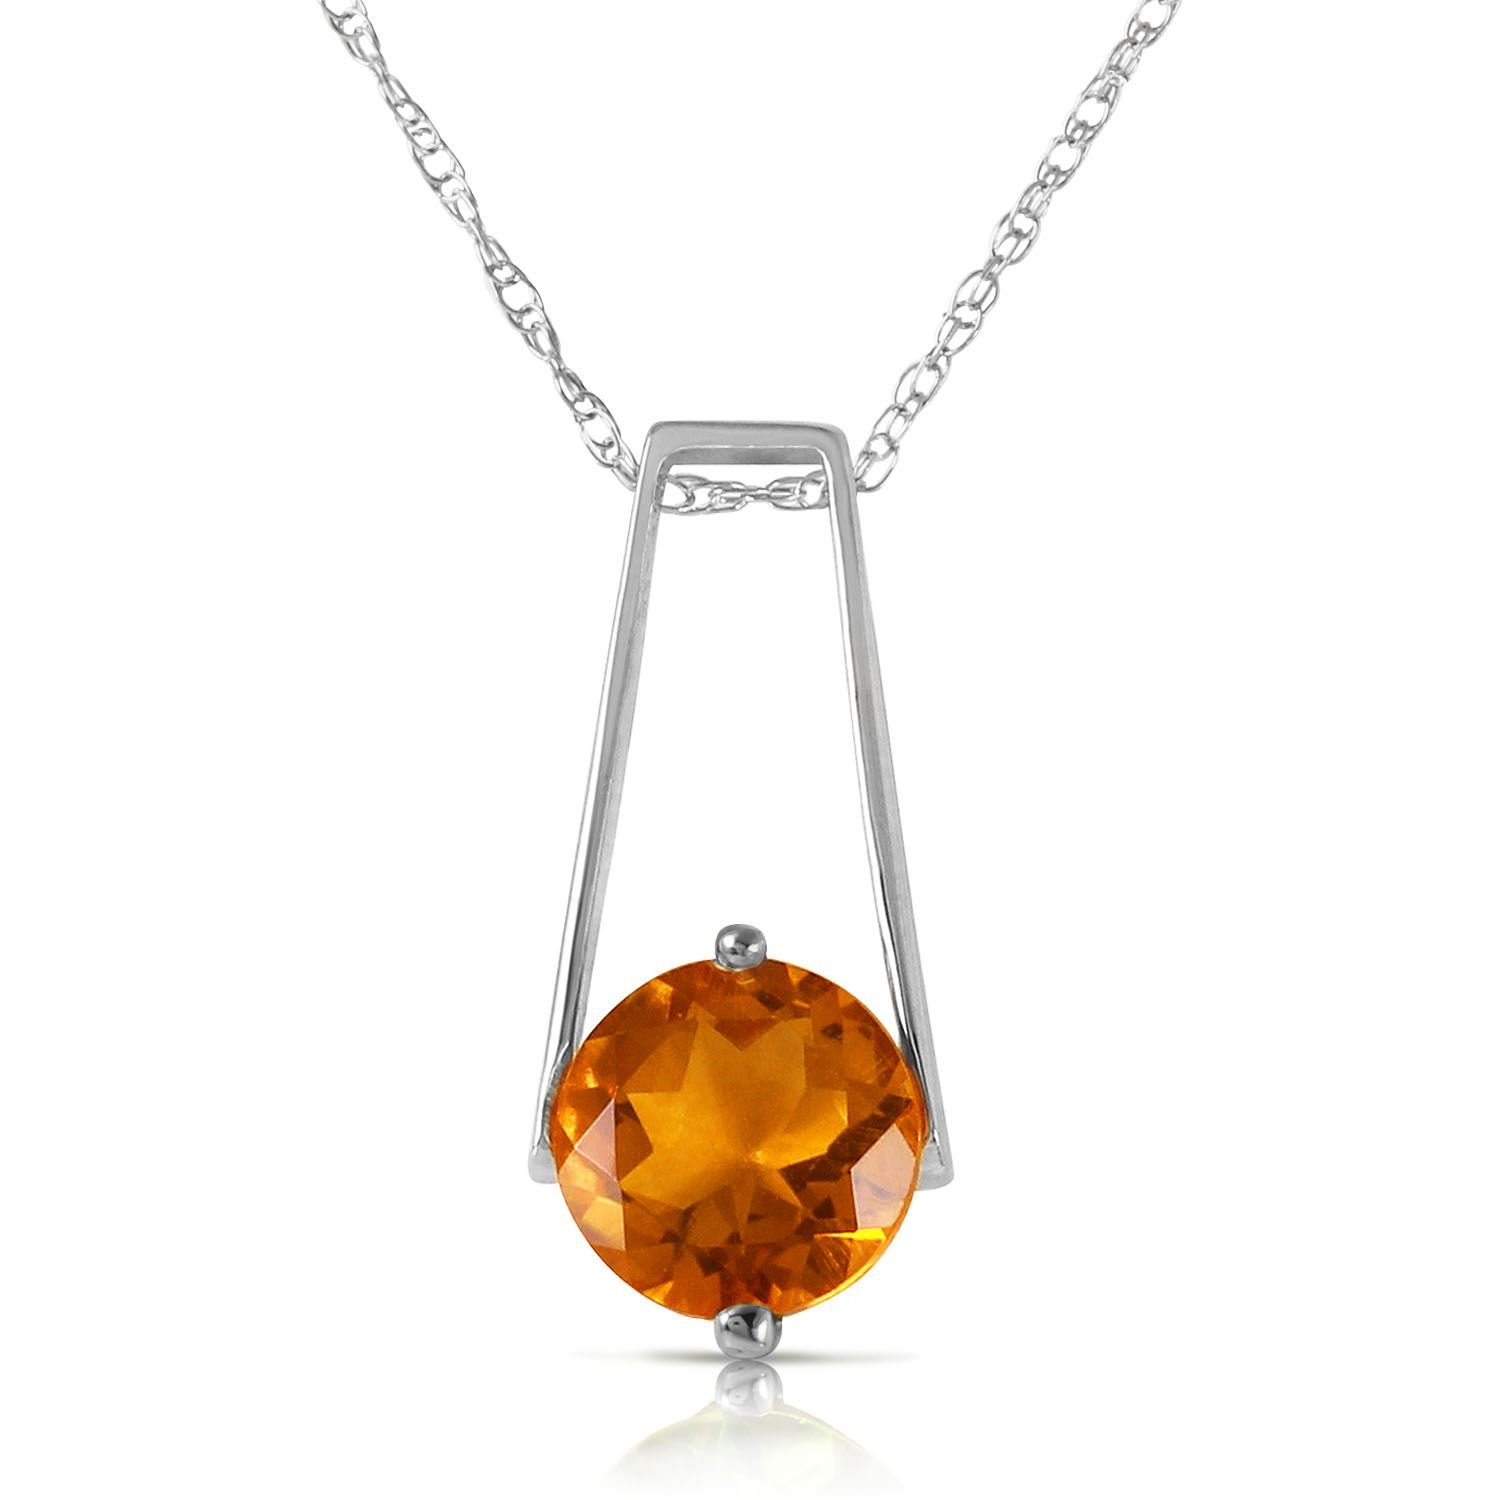 ALARRI 1.45 Carat 14K Solid White Gold Smooth Love Citrine Necklace with 18 Inch Chain Length